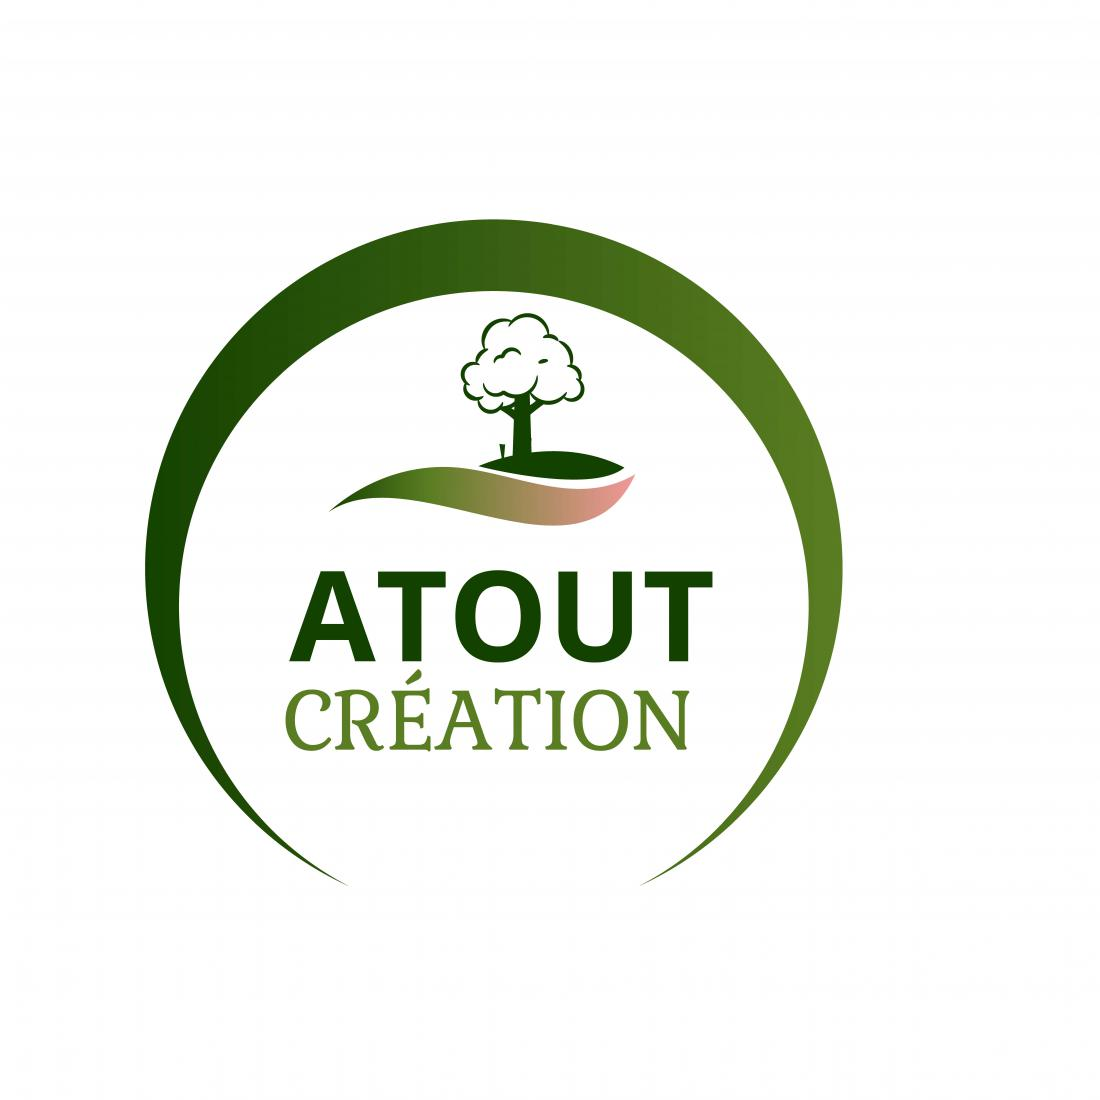 ATOUT CREATION